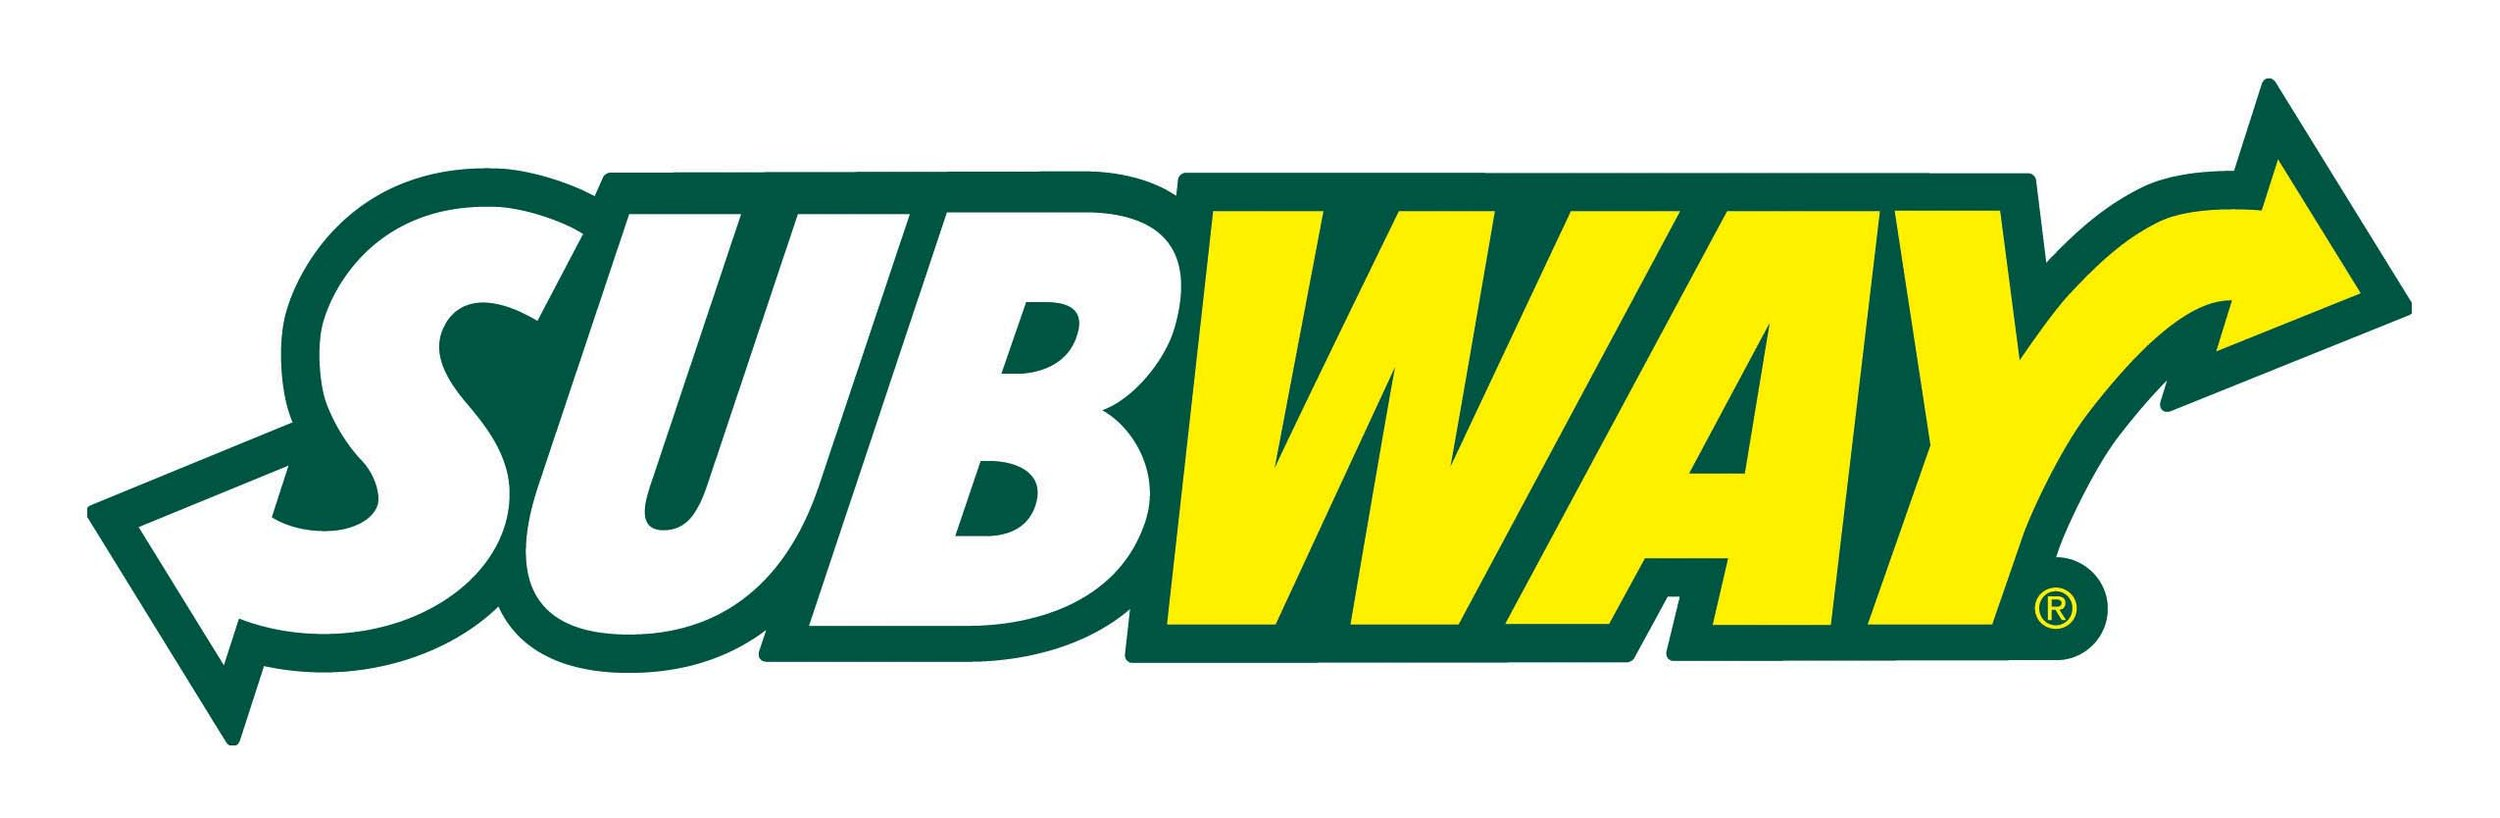 Subway_logo.jpg